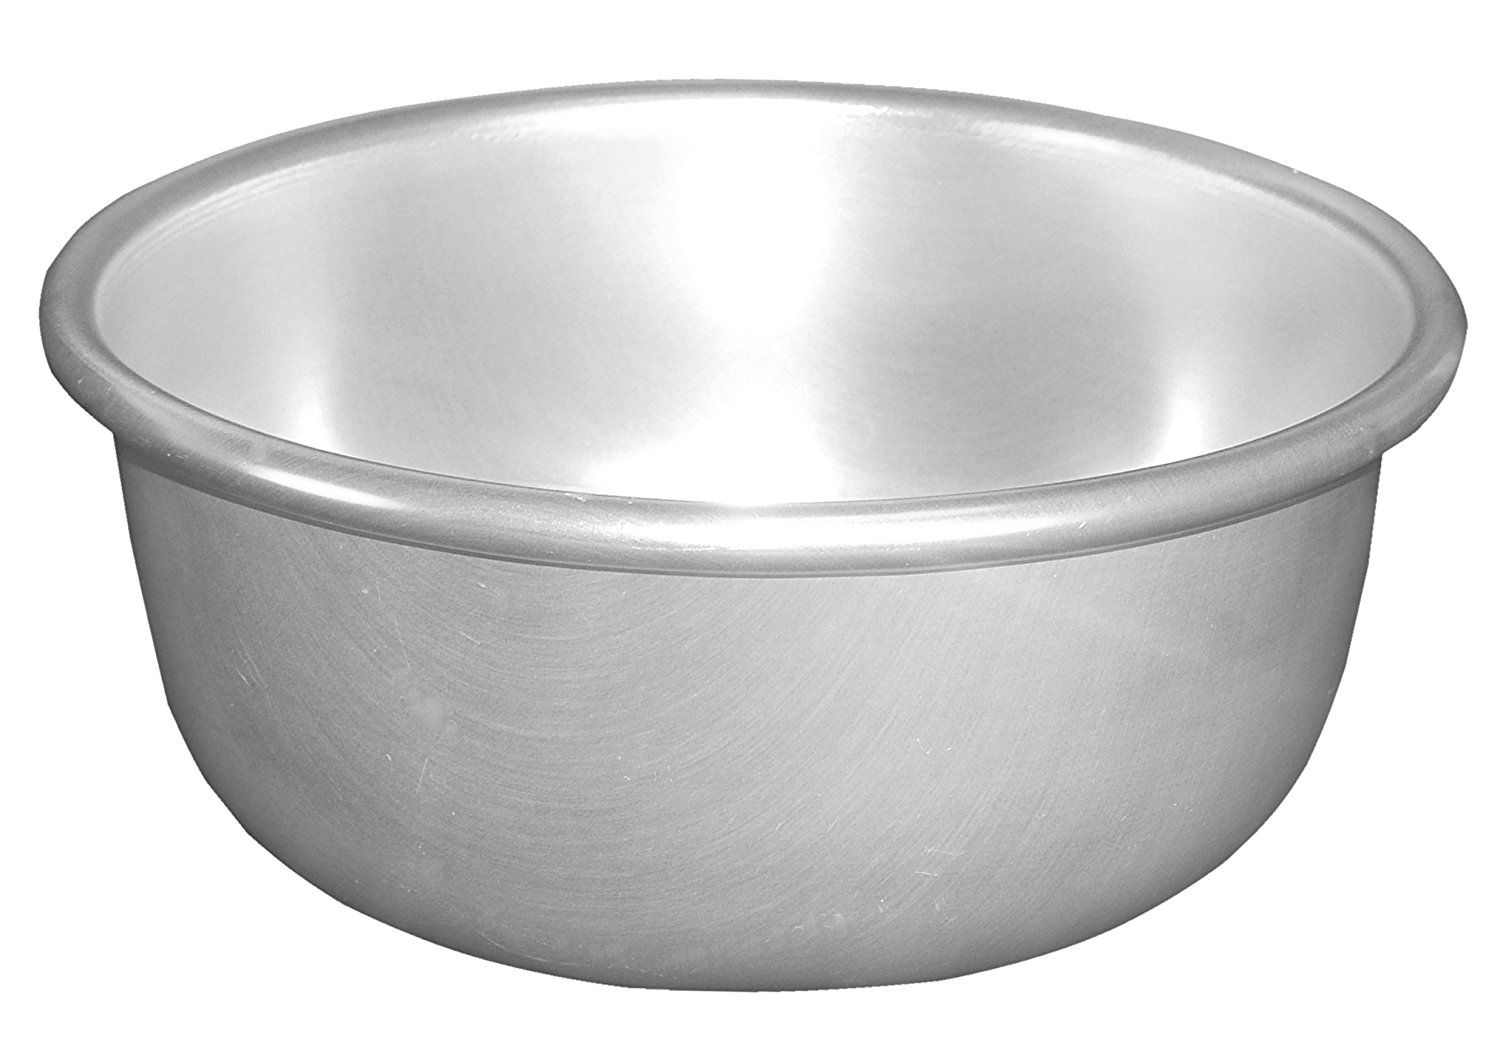 48+ 6 inch cake pan removable bottom ideas